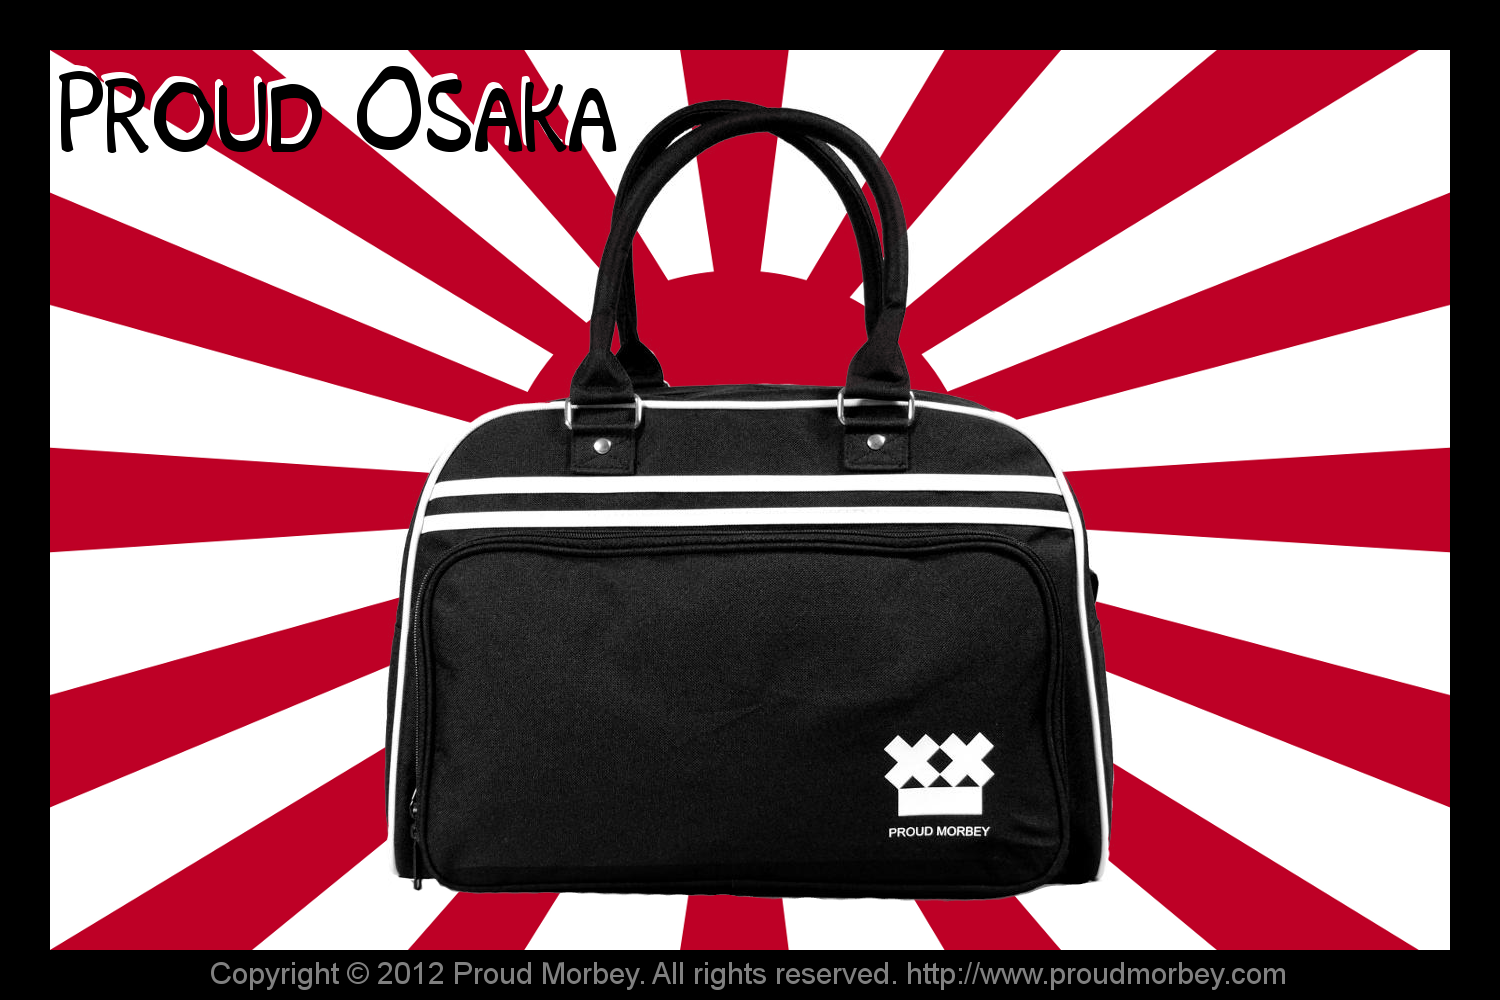 We know it's the japanese war flag. But Proud Osaka just looks sooo cool in this scenary... Don't you think so?